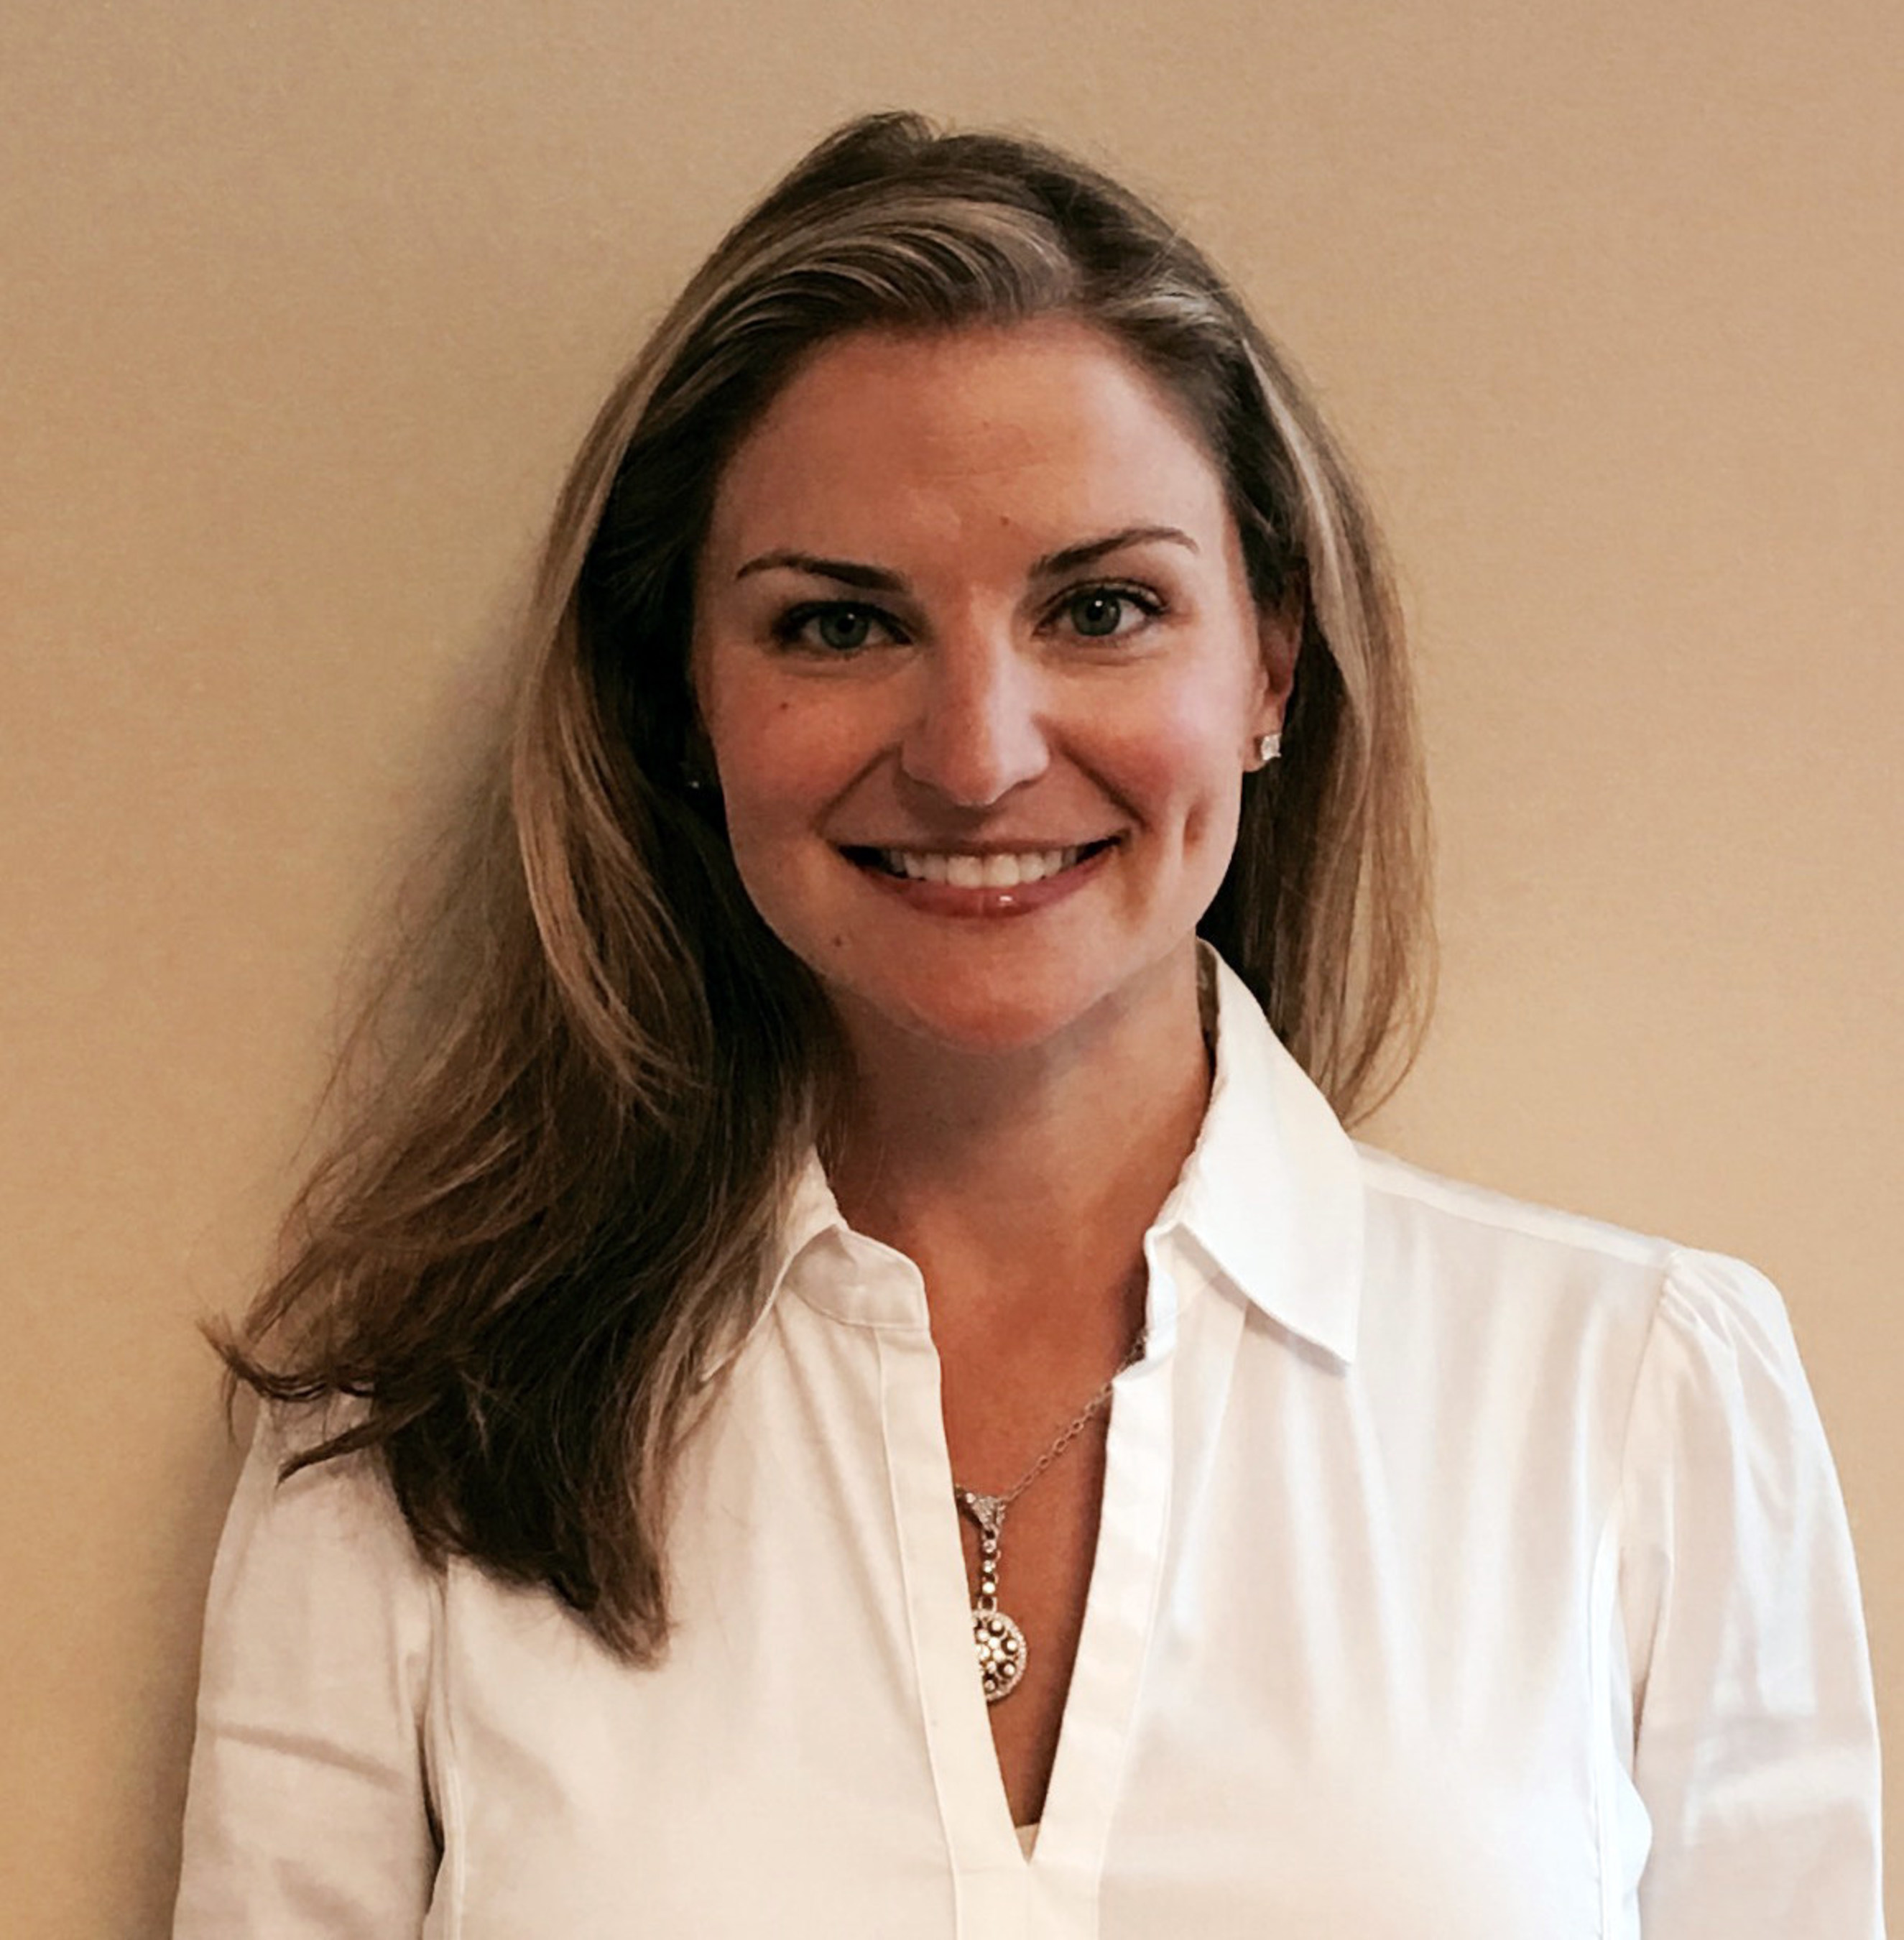 Christine Harman, Head Casualty, US Central Region, Swiss Re Corporate Solutions